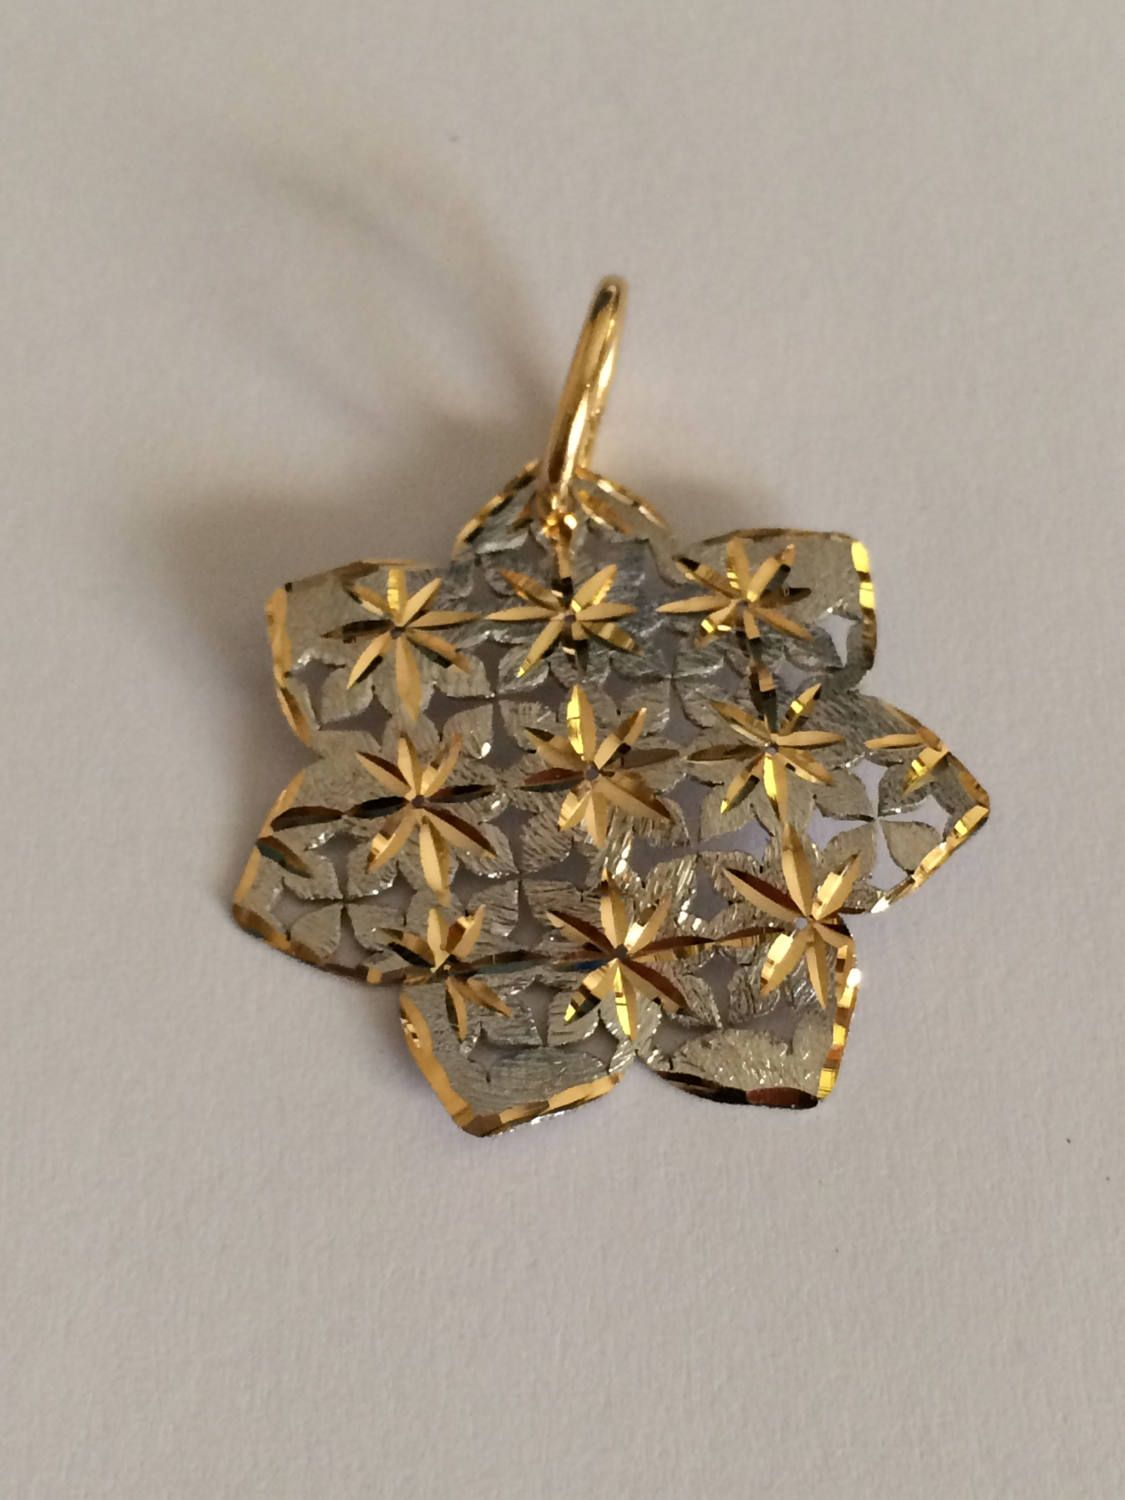 Flower shaped pendant in white and yellow 18k gold. di Meljewelry1908 su Etsy